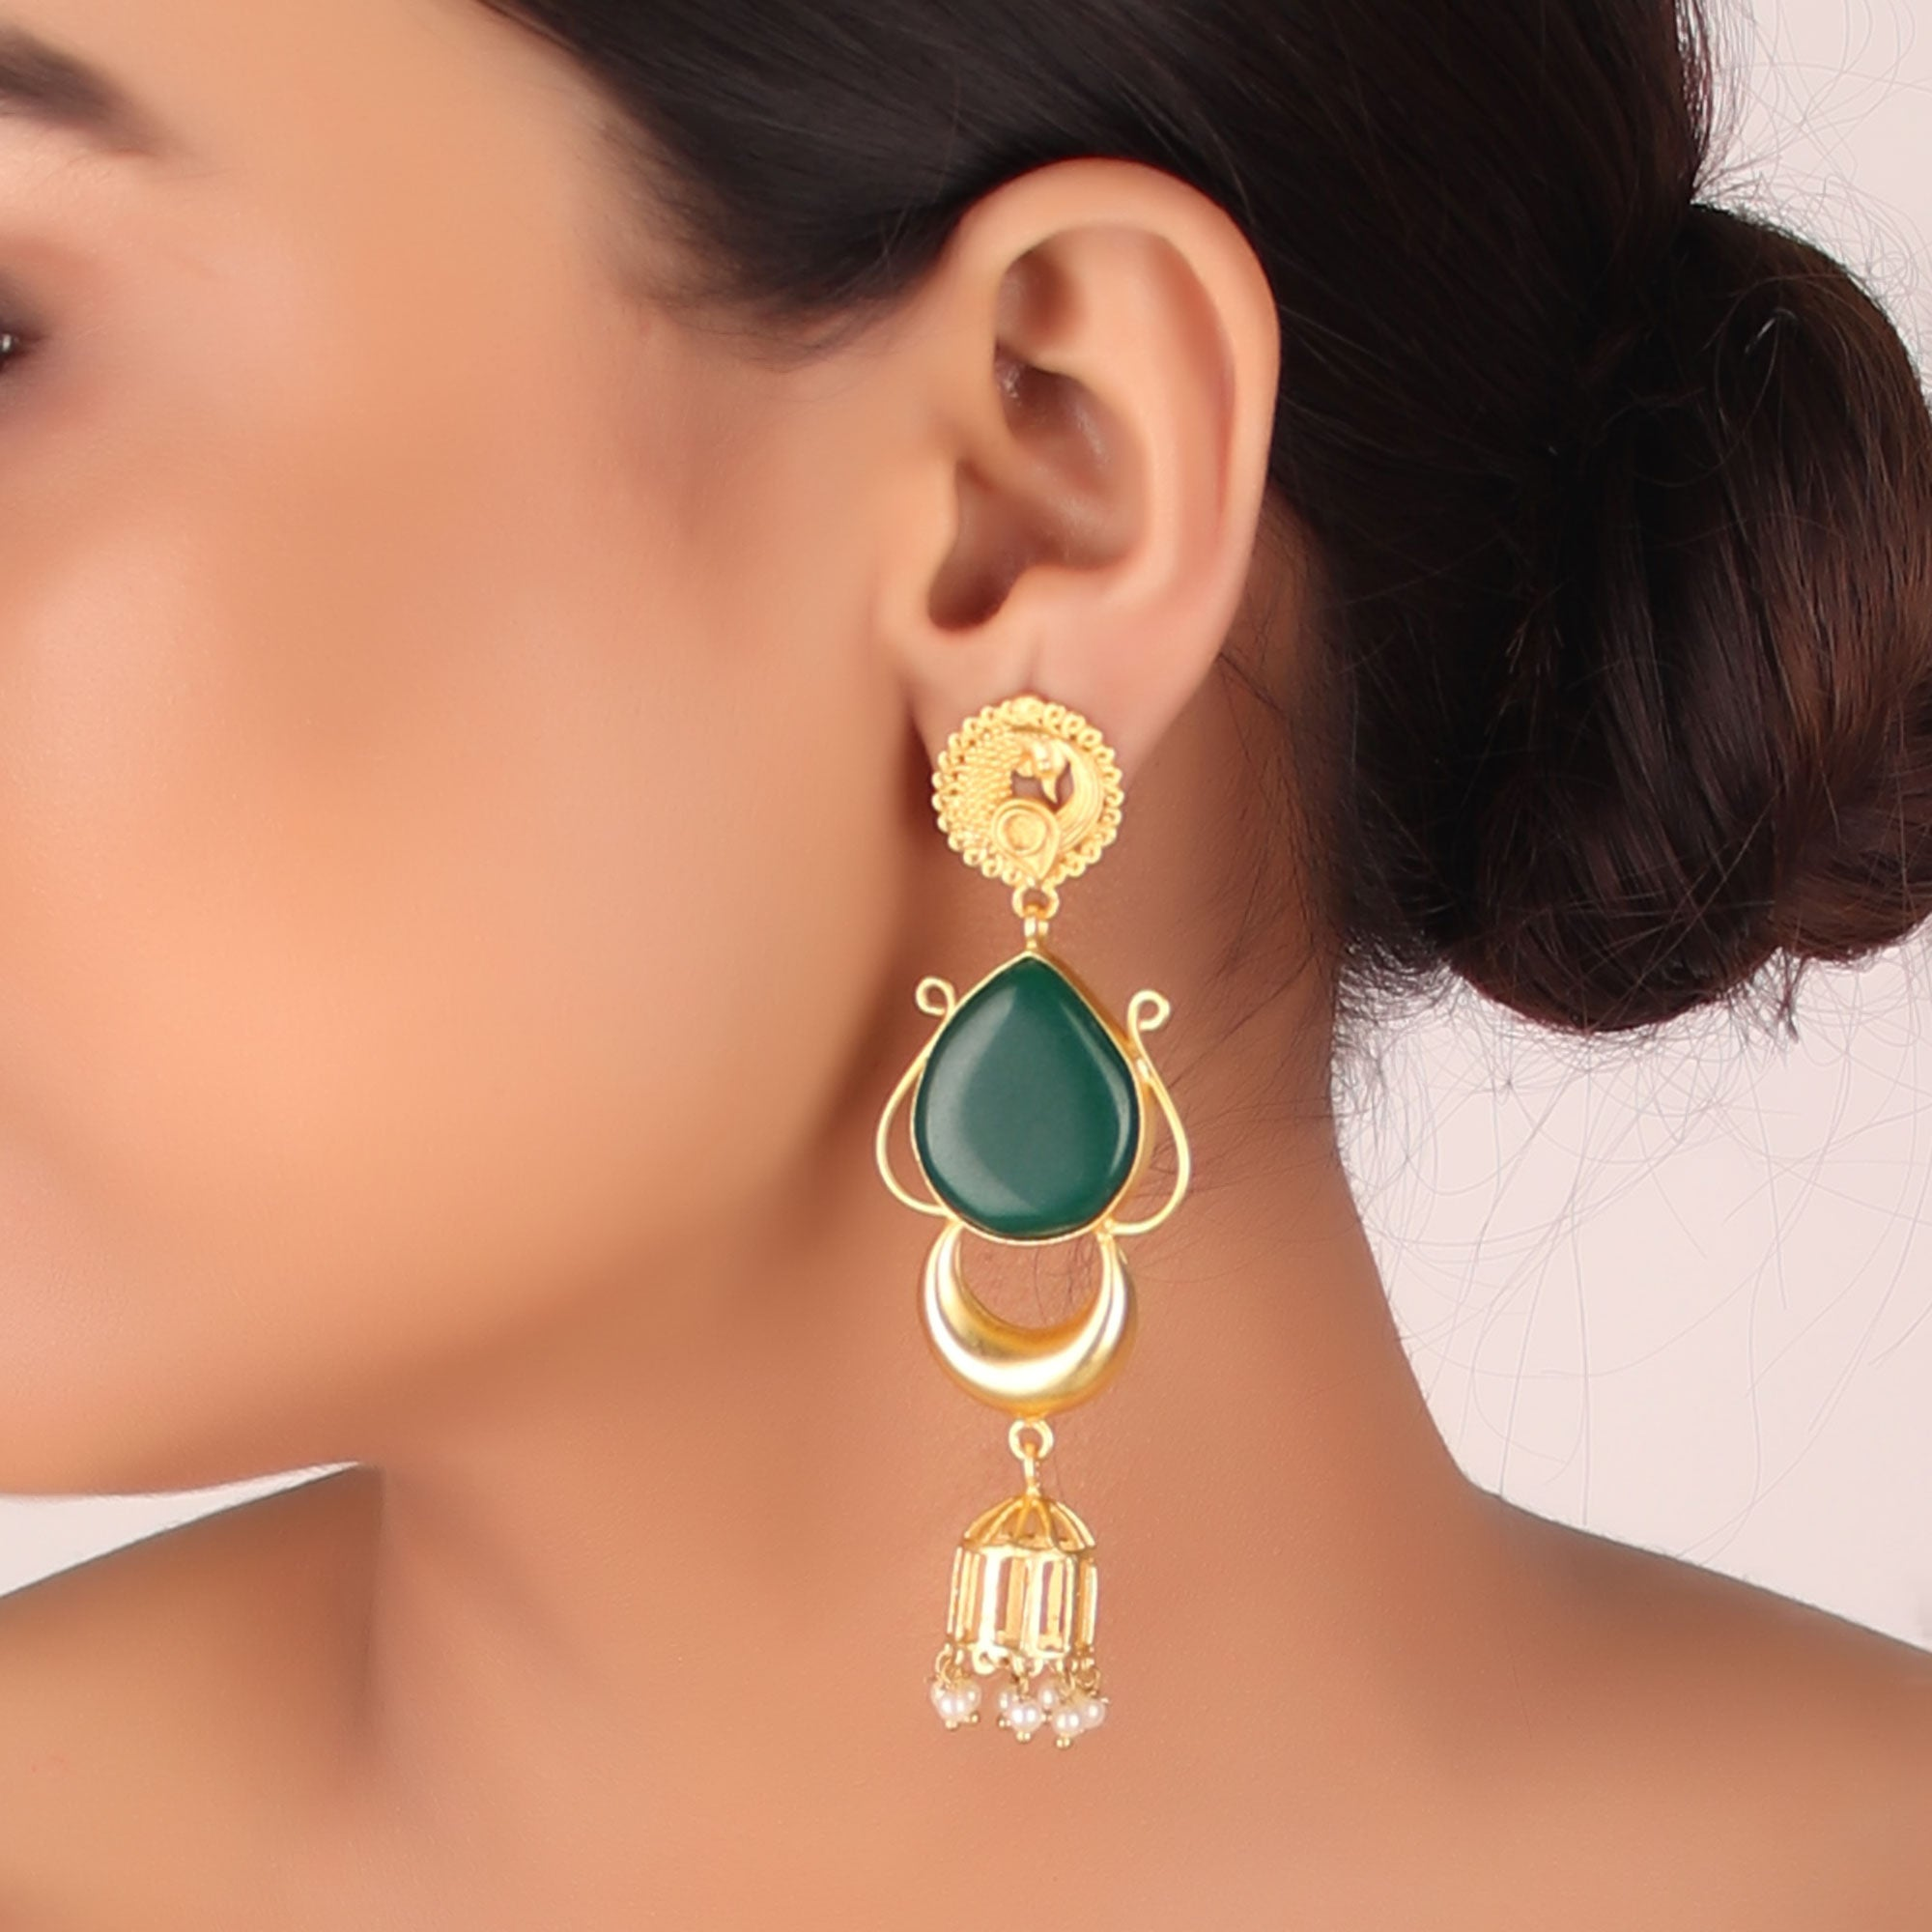 Earrings,The Delightful Glitter Jhoomar with Bottle Green Stone - Cippele Multi Store